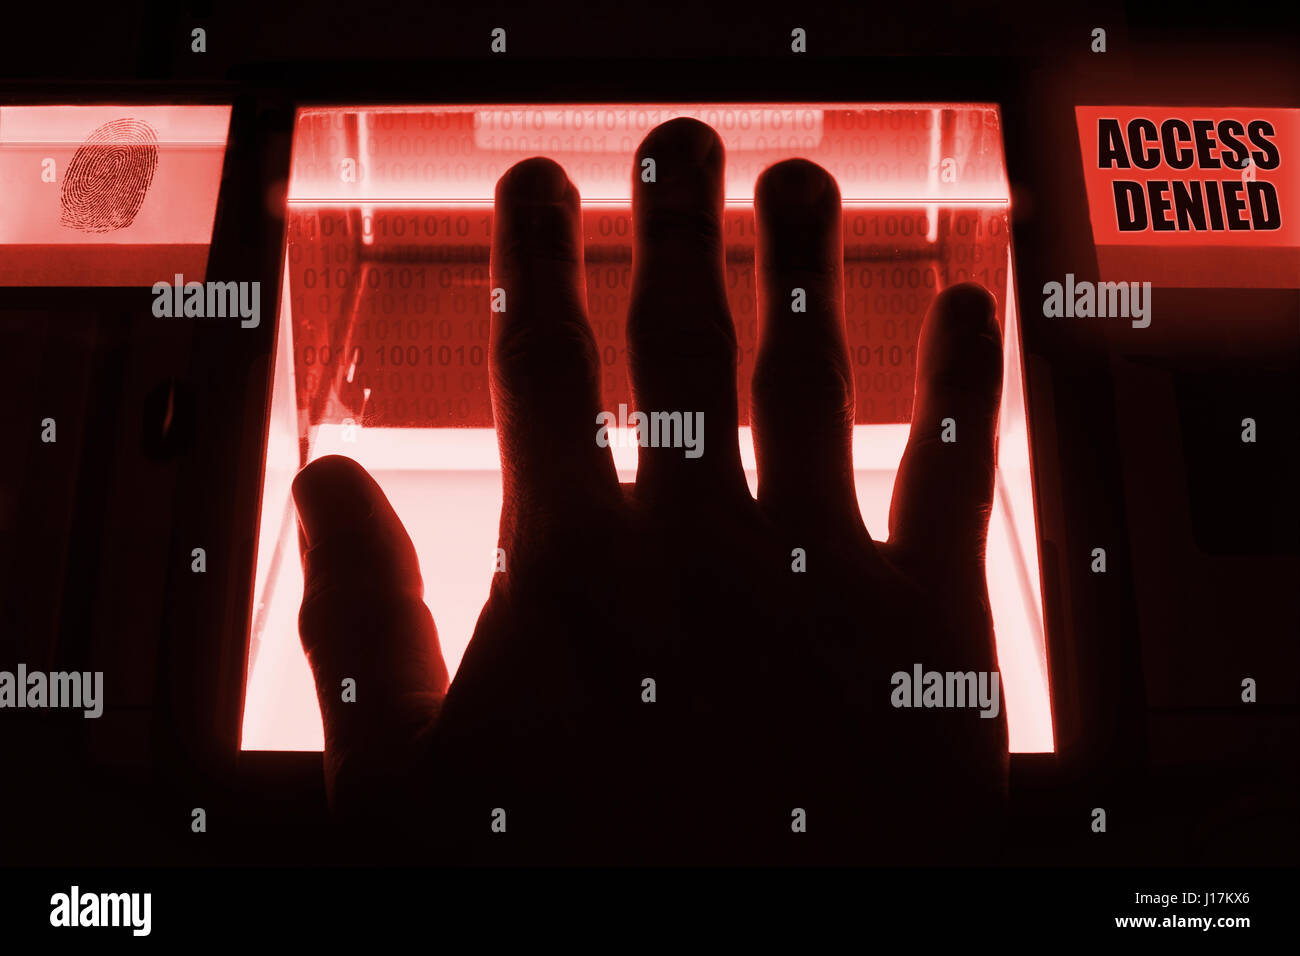 A person uses a fingerprint scanner., to unlock a computersystem. The system denies his entry - access denied. - Stock Image